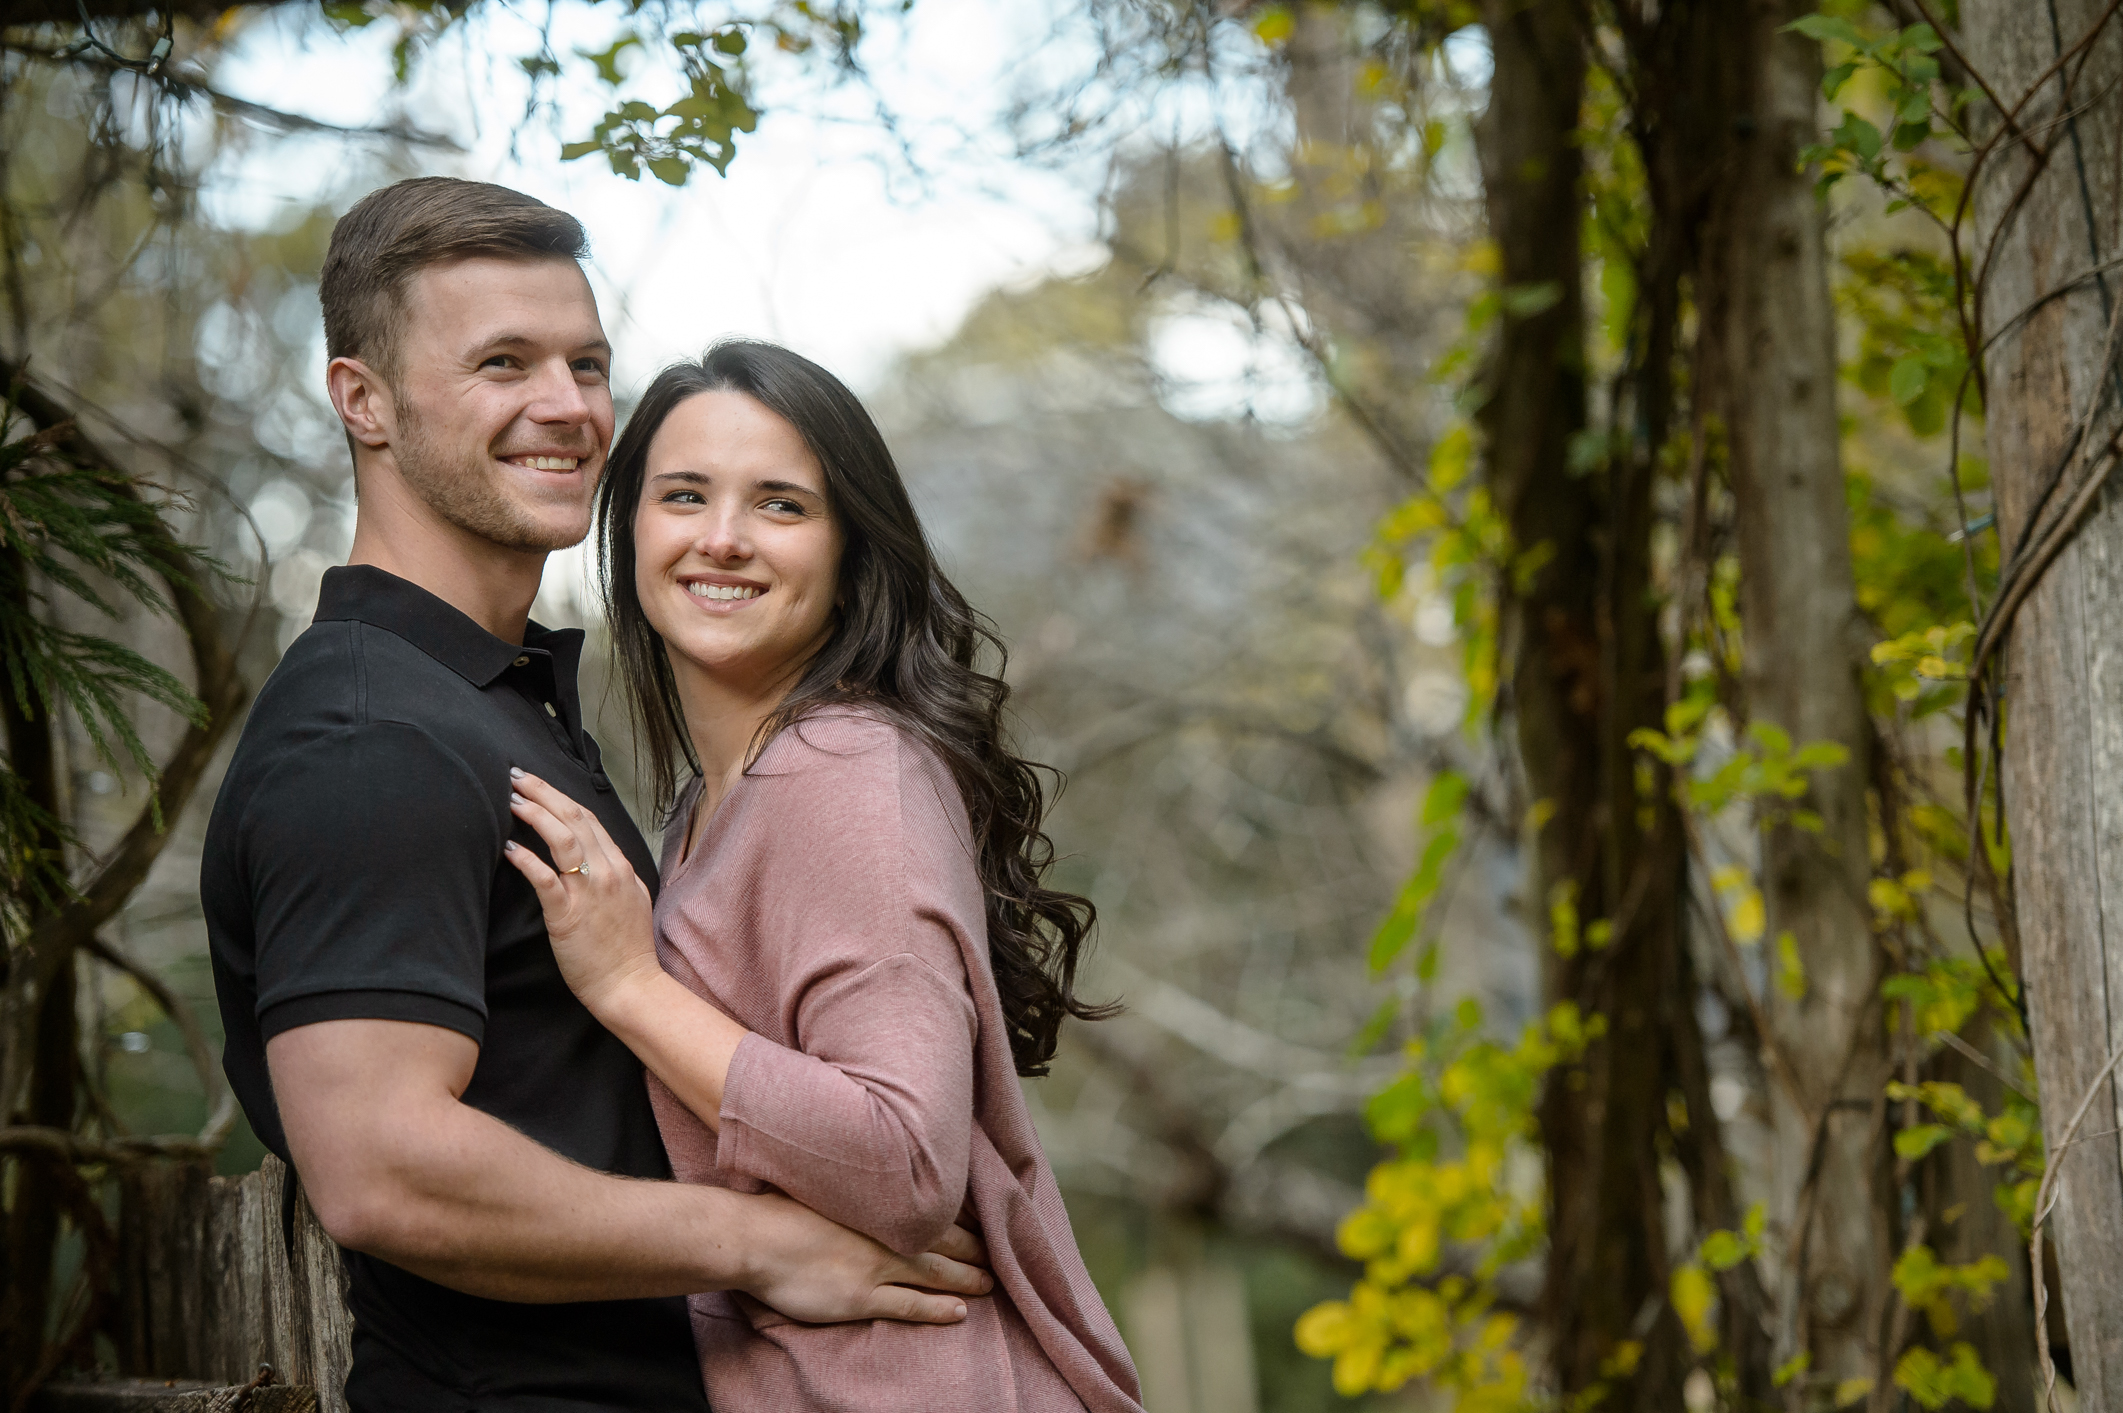 Outdoor engagement session-37.JPG